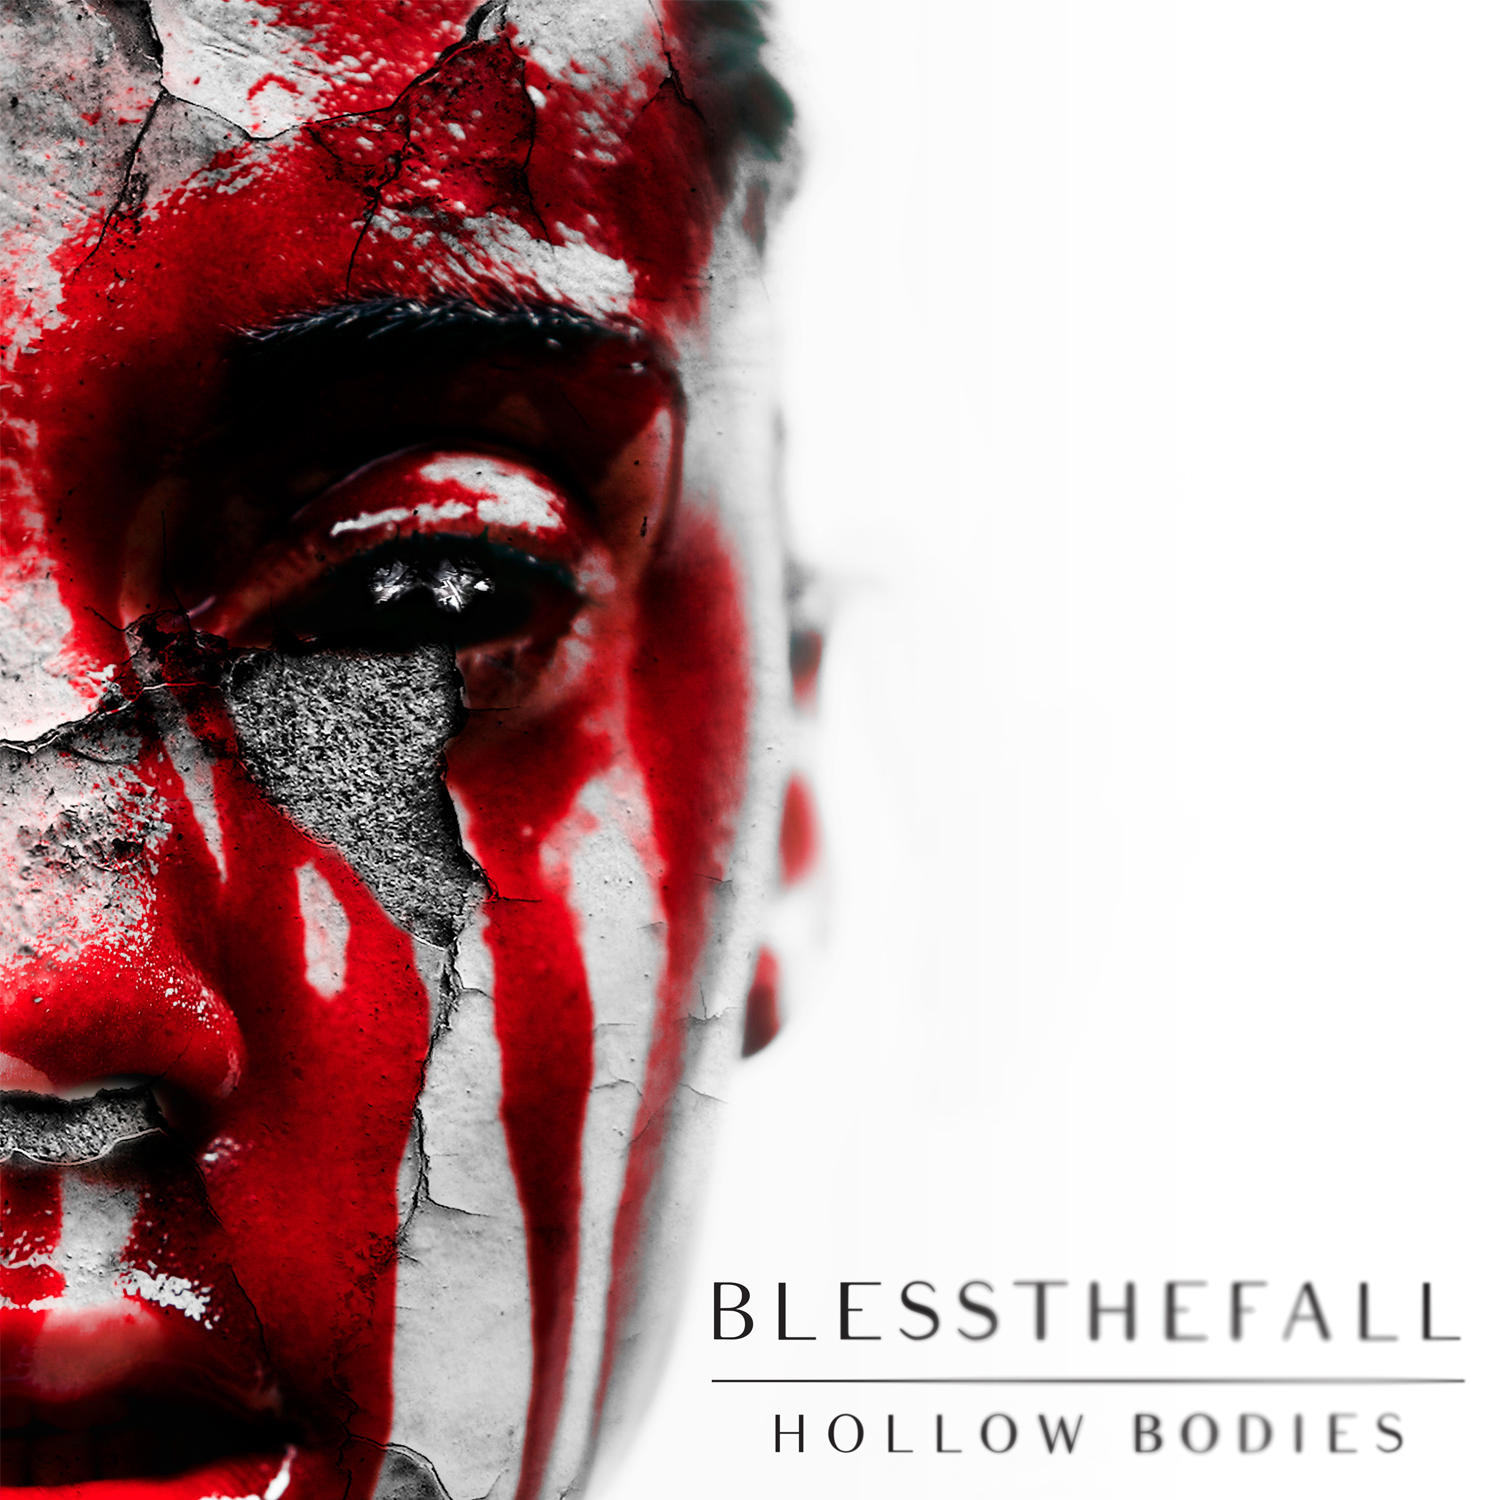 Blessthefall Hollow Bodies Hm Magazine